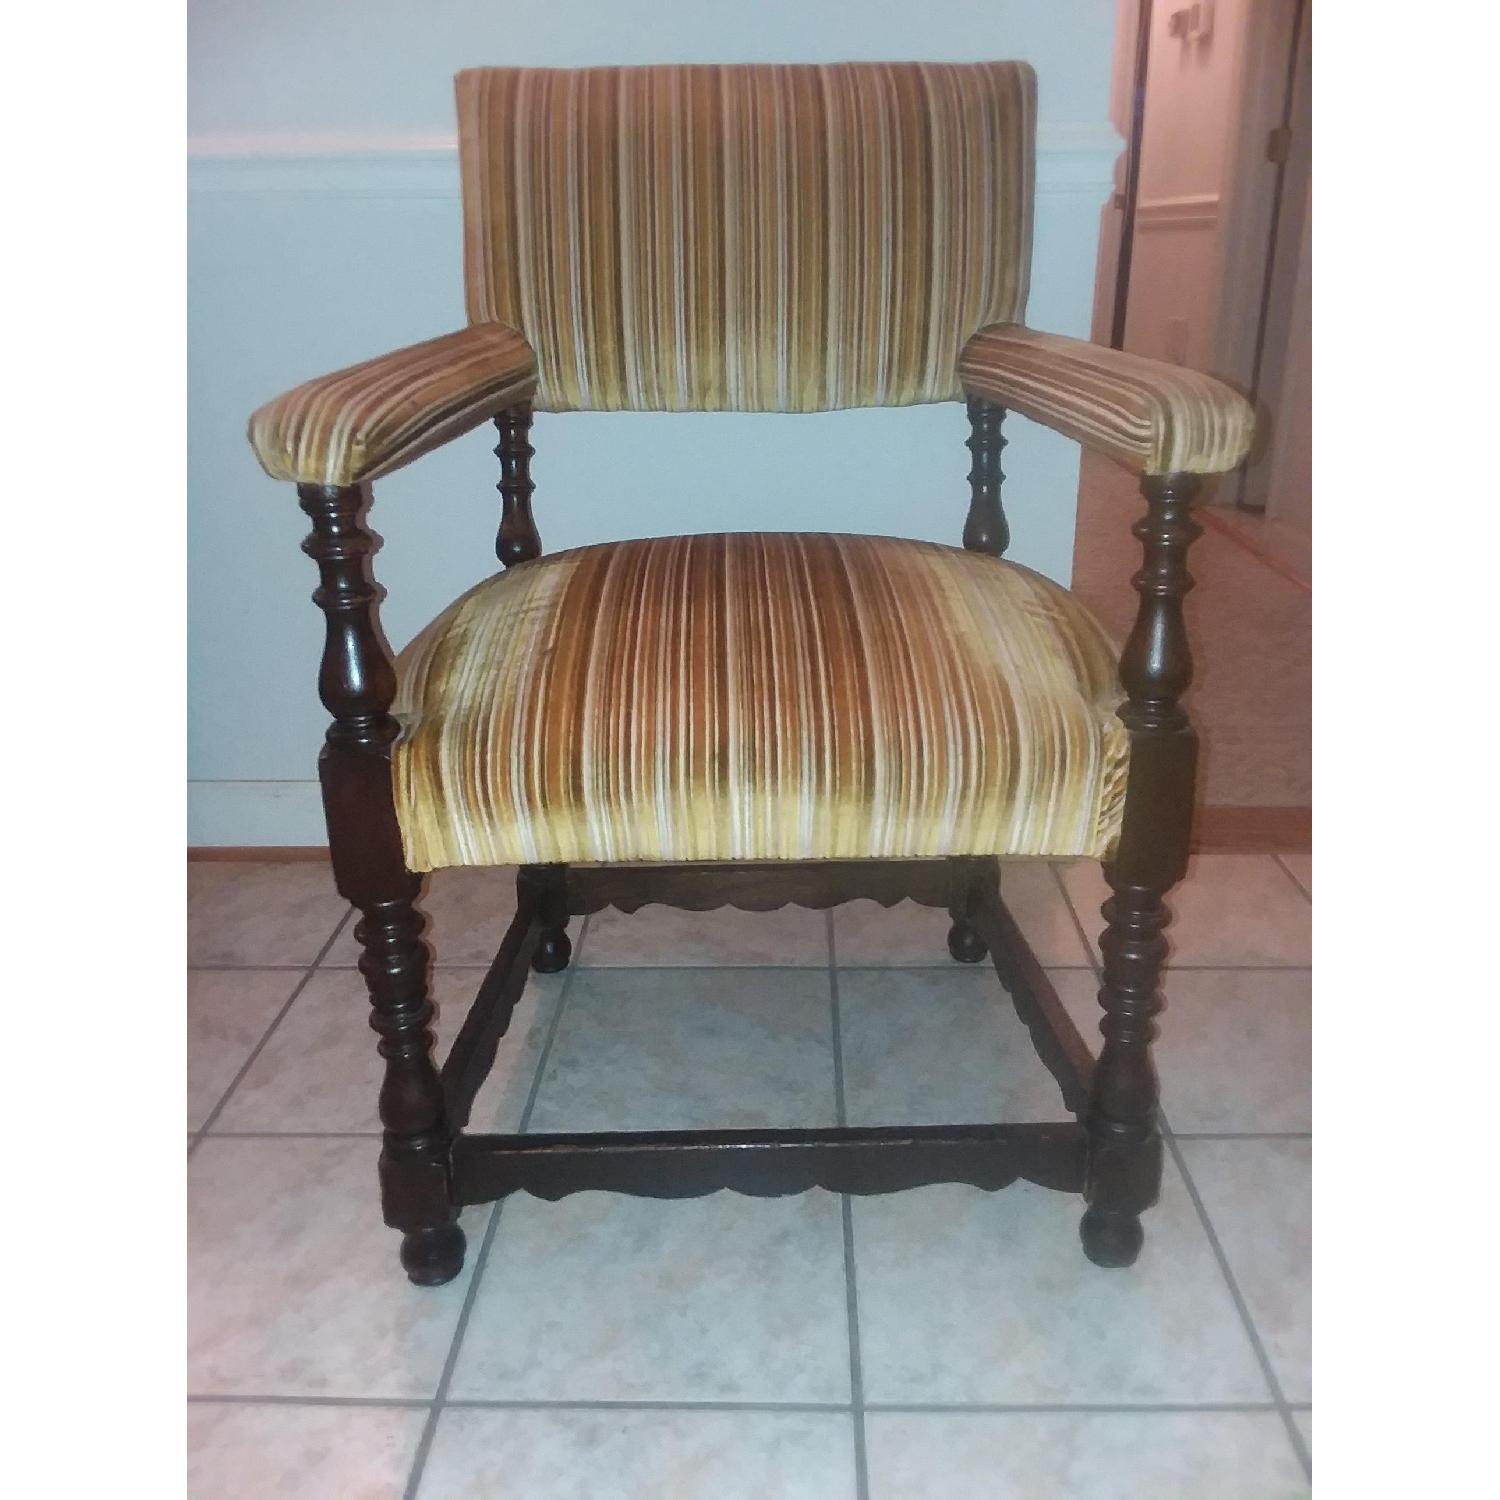 Vintage Provincial Chairs - image-2